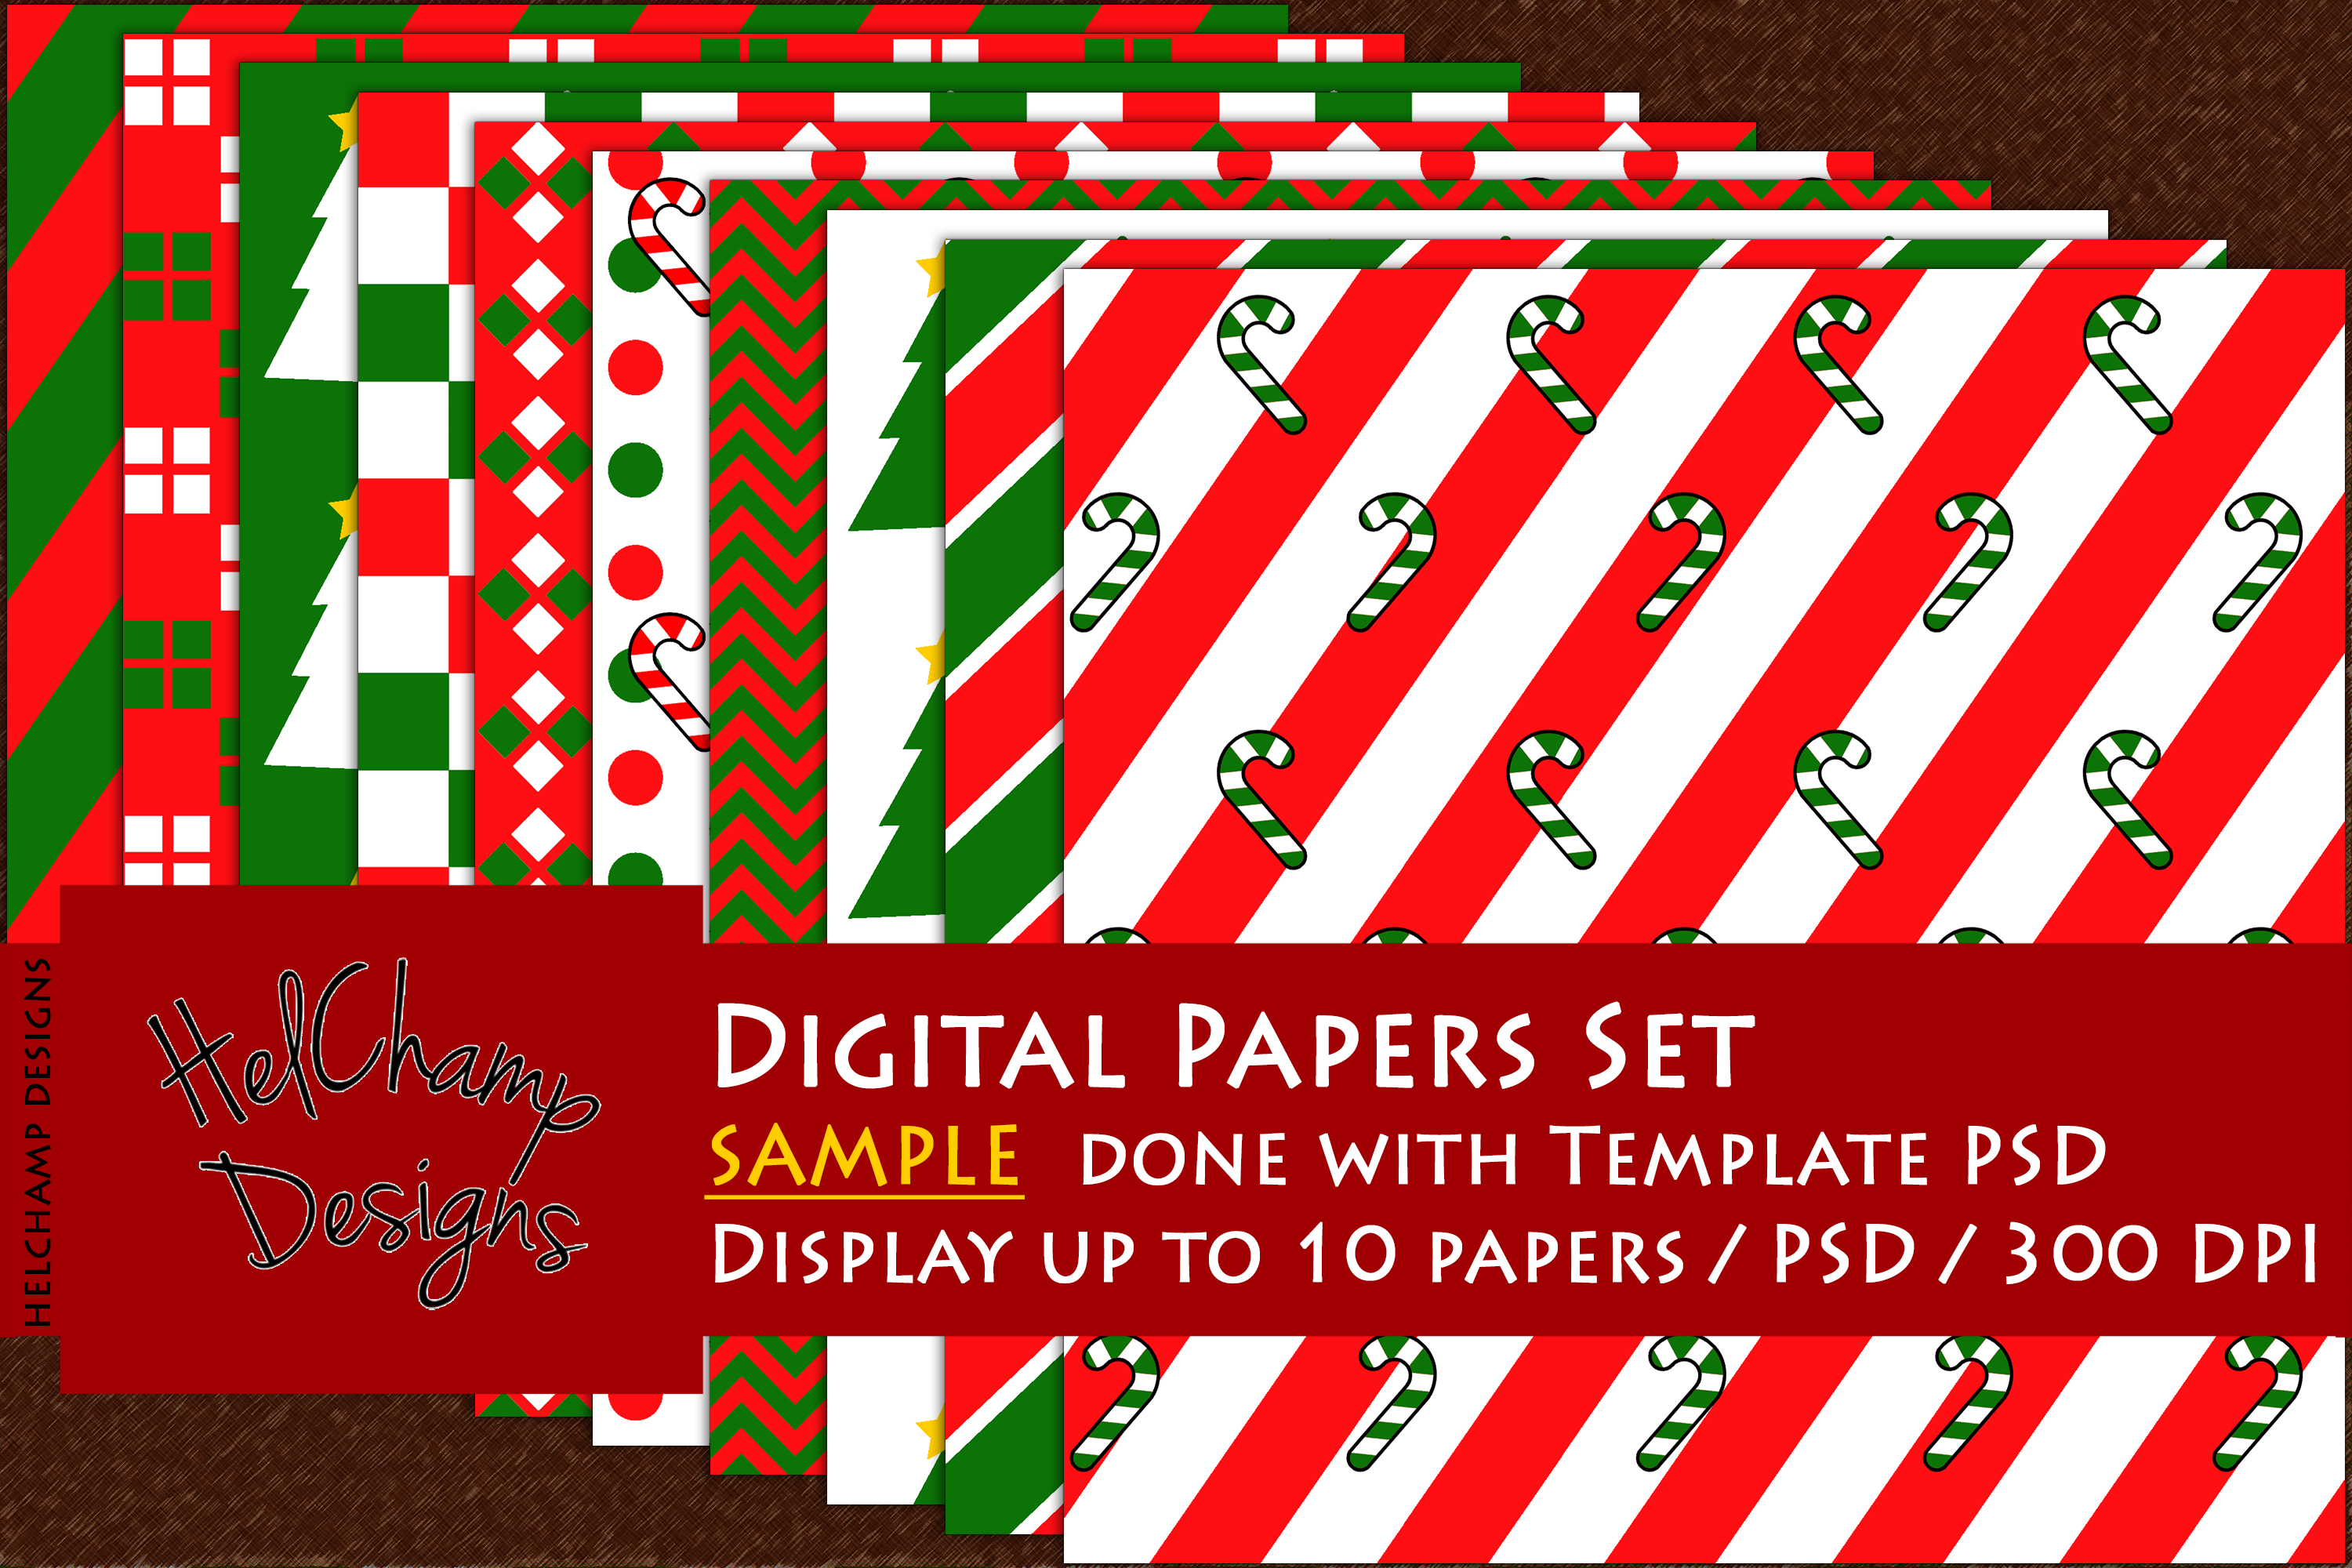 1 to 10 Panels Mockup for Digital Papers - M04 example image 4